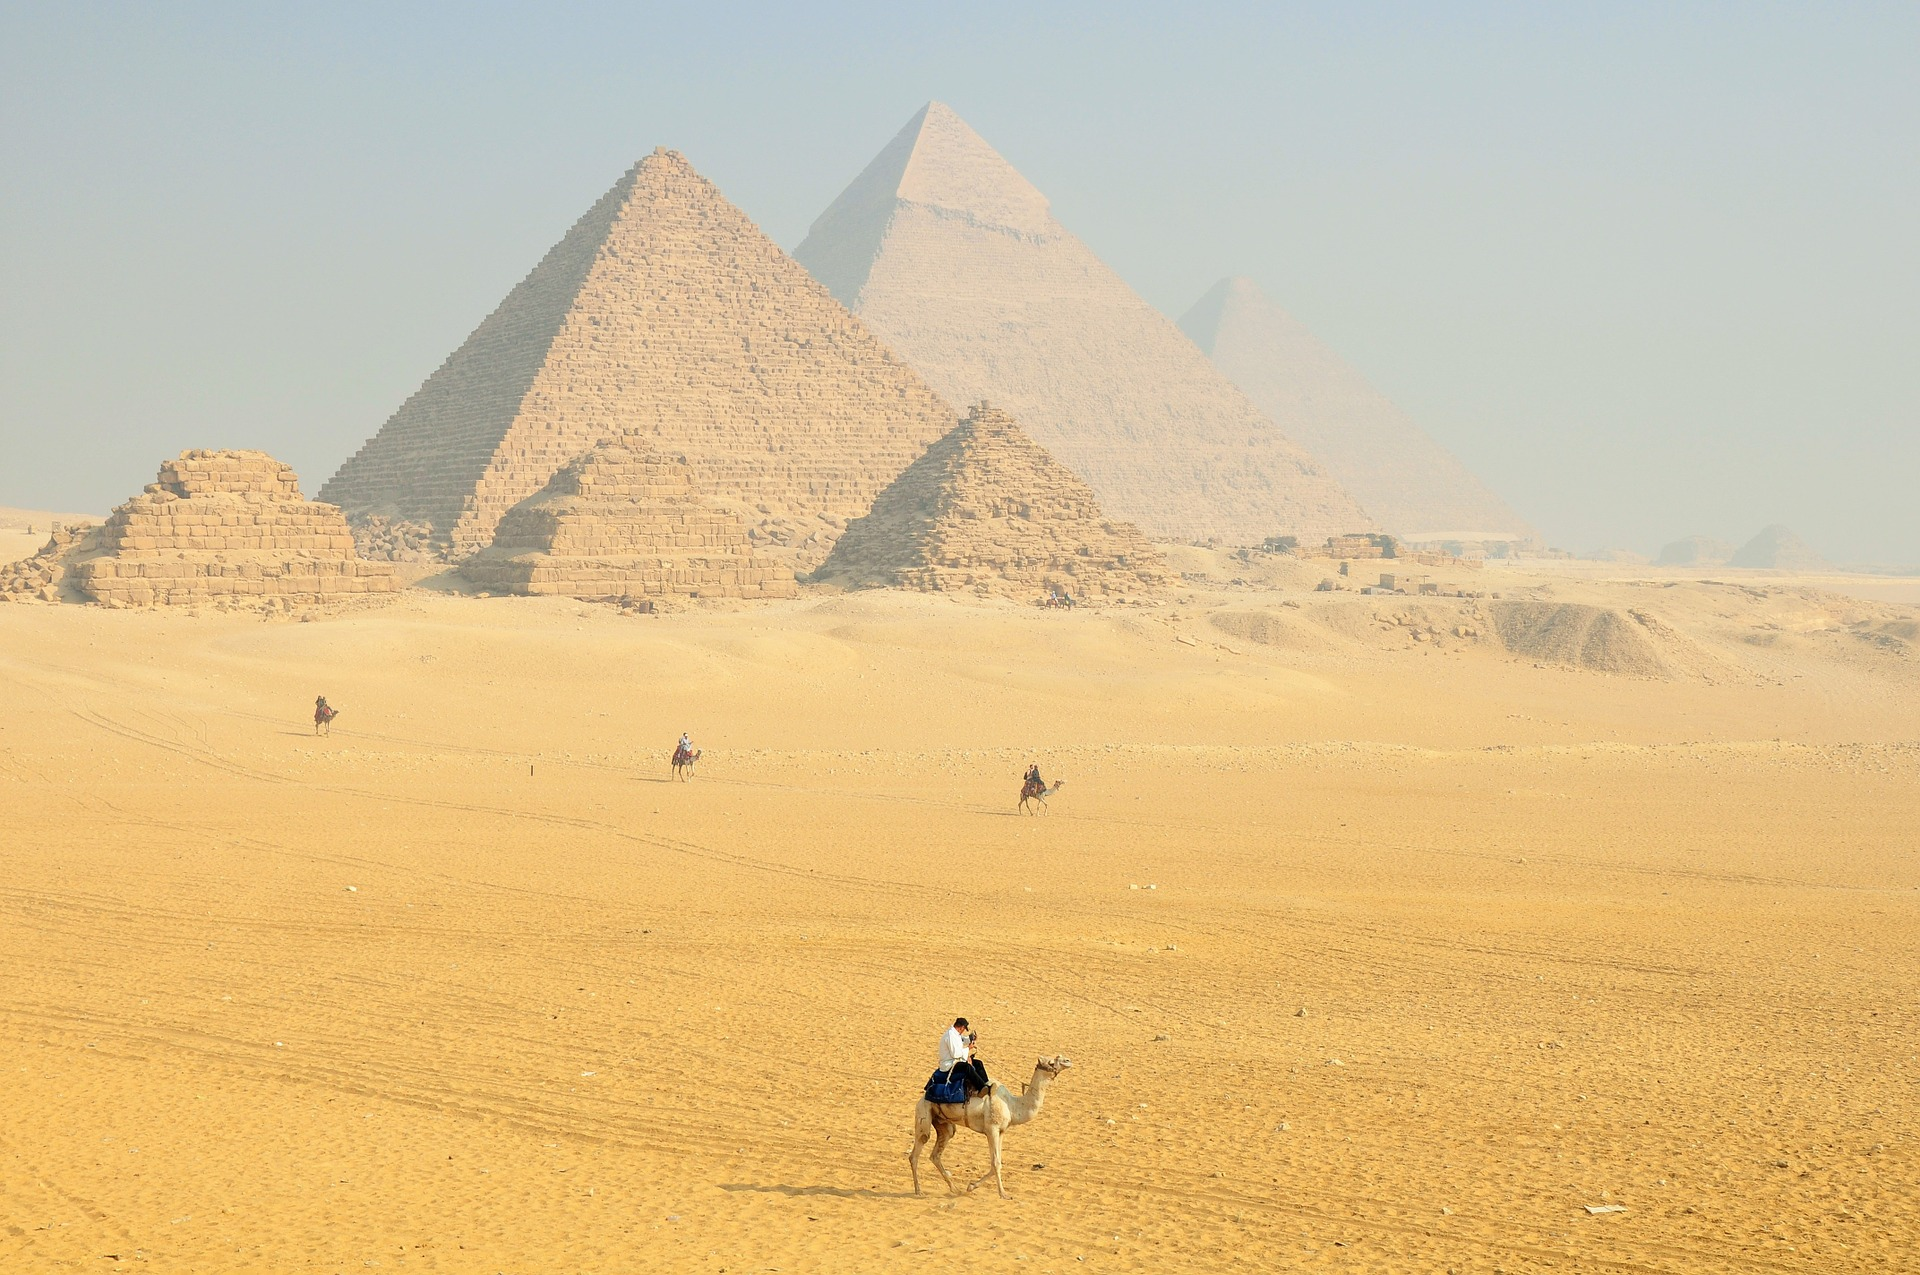 Camel riders in front of the pyramids in Egypt